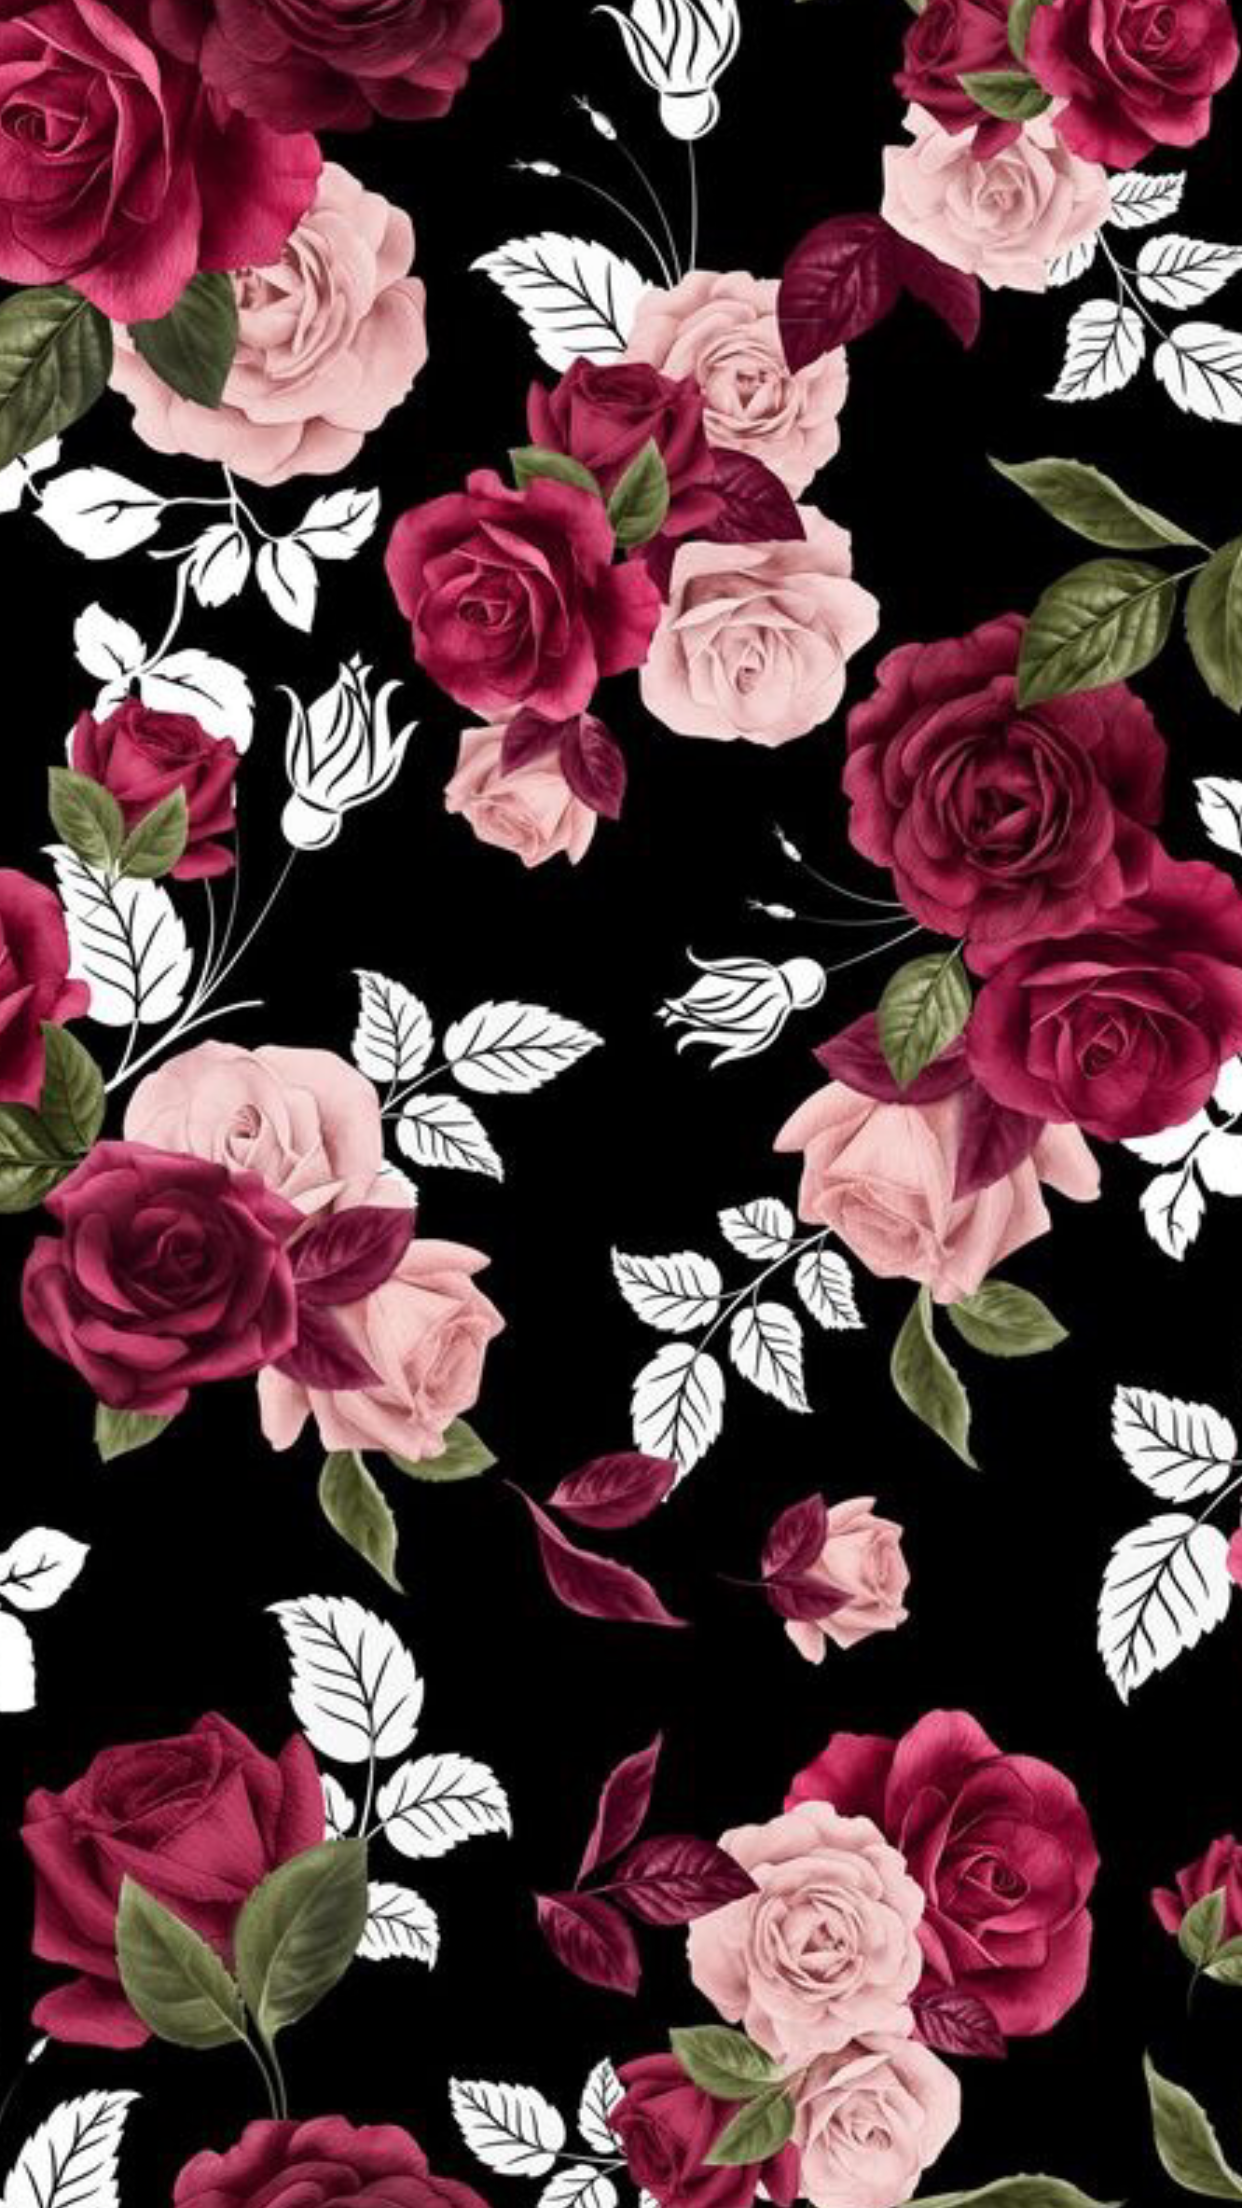 Phone Background Vintage Flowers Wallpaper Flower Wallpaper Flower Background Wallpaper